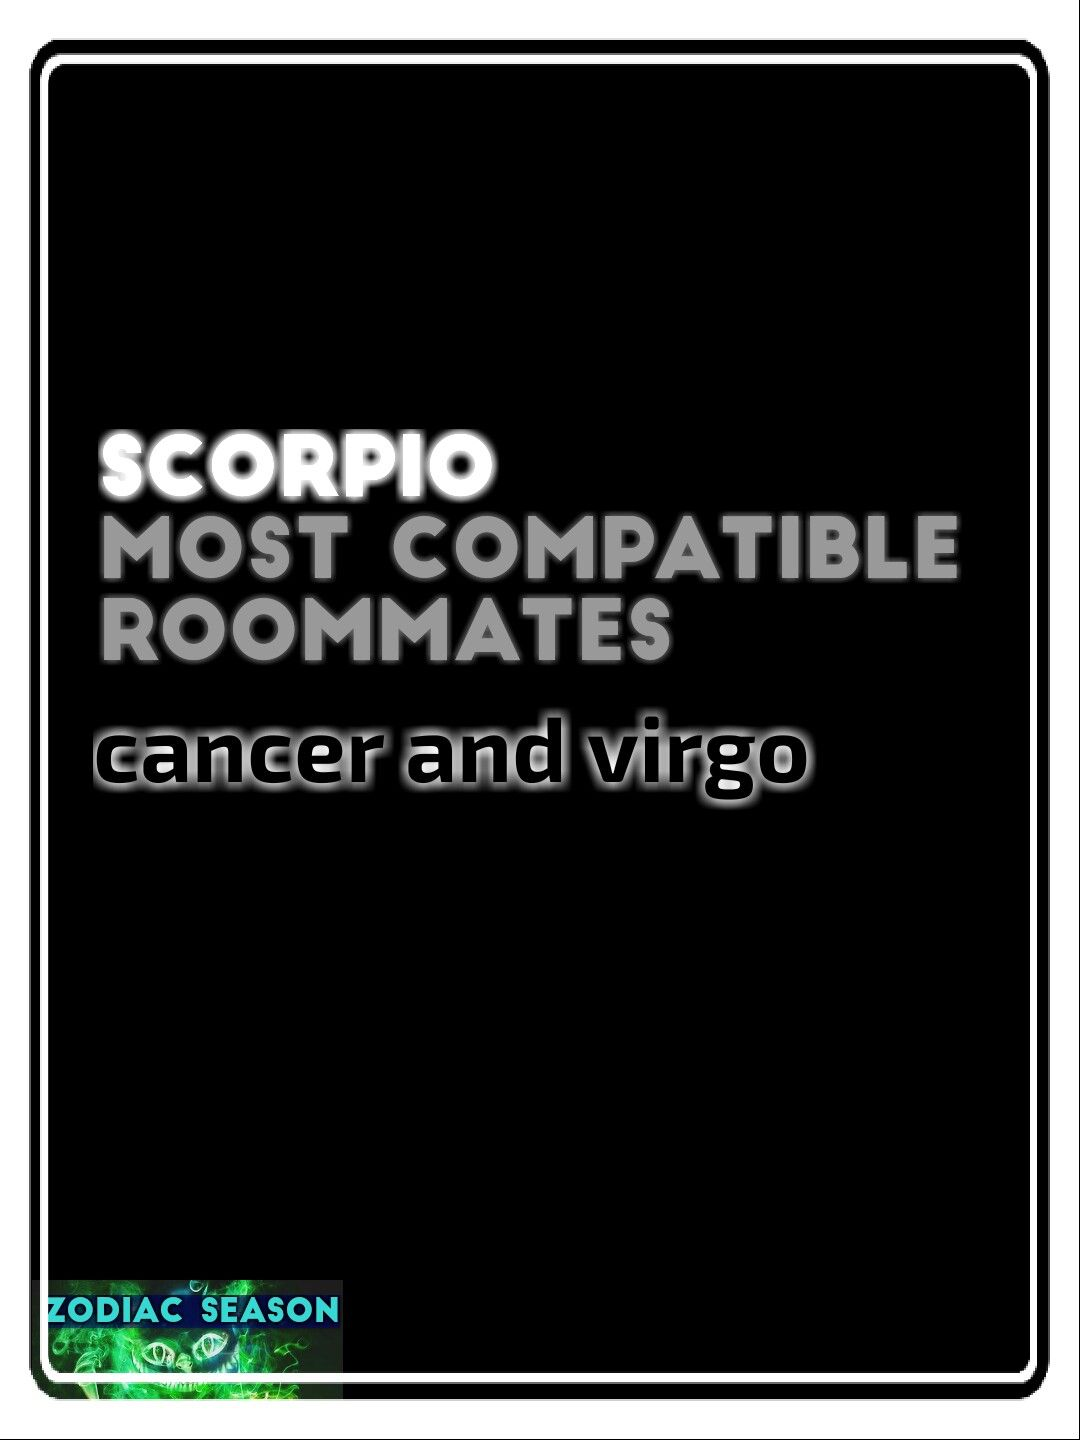 Scorpio Most compatible roommates | All Things Zodiac